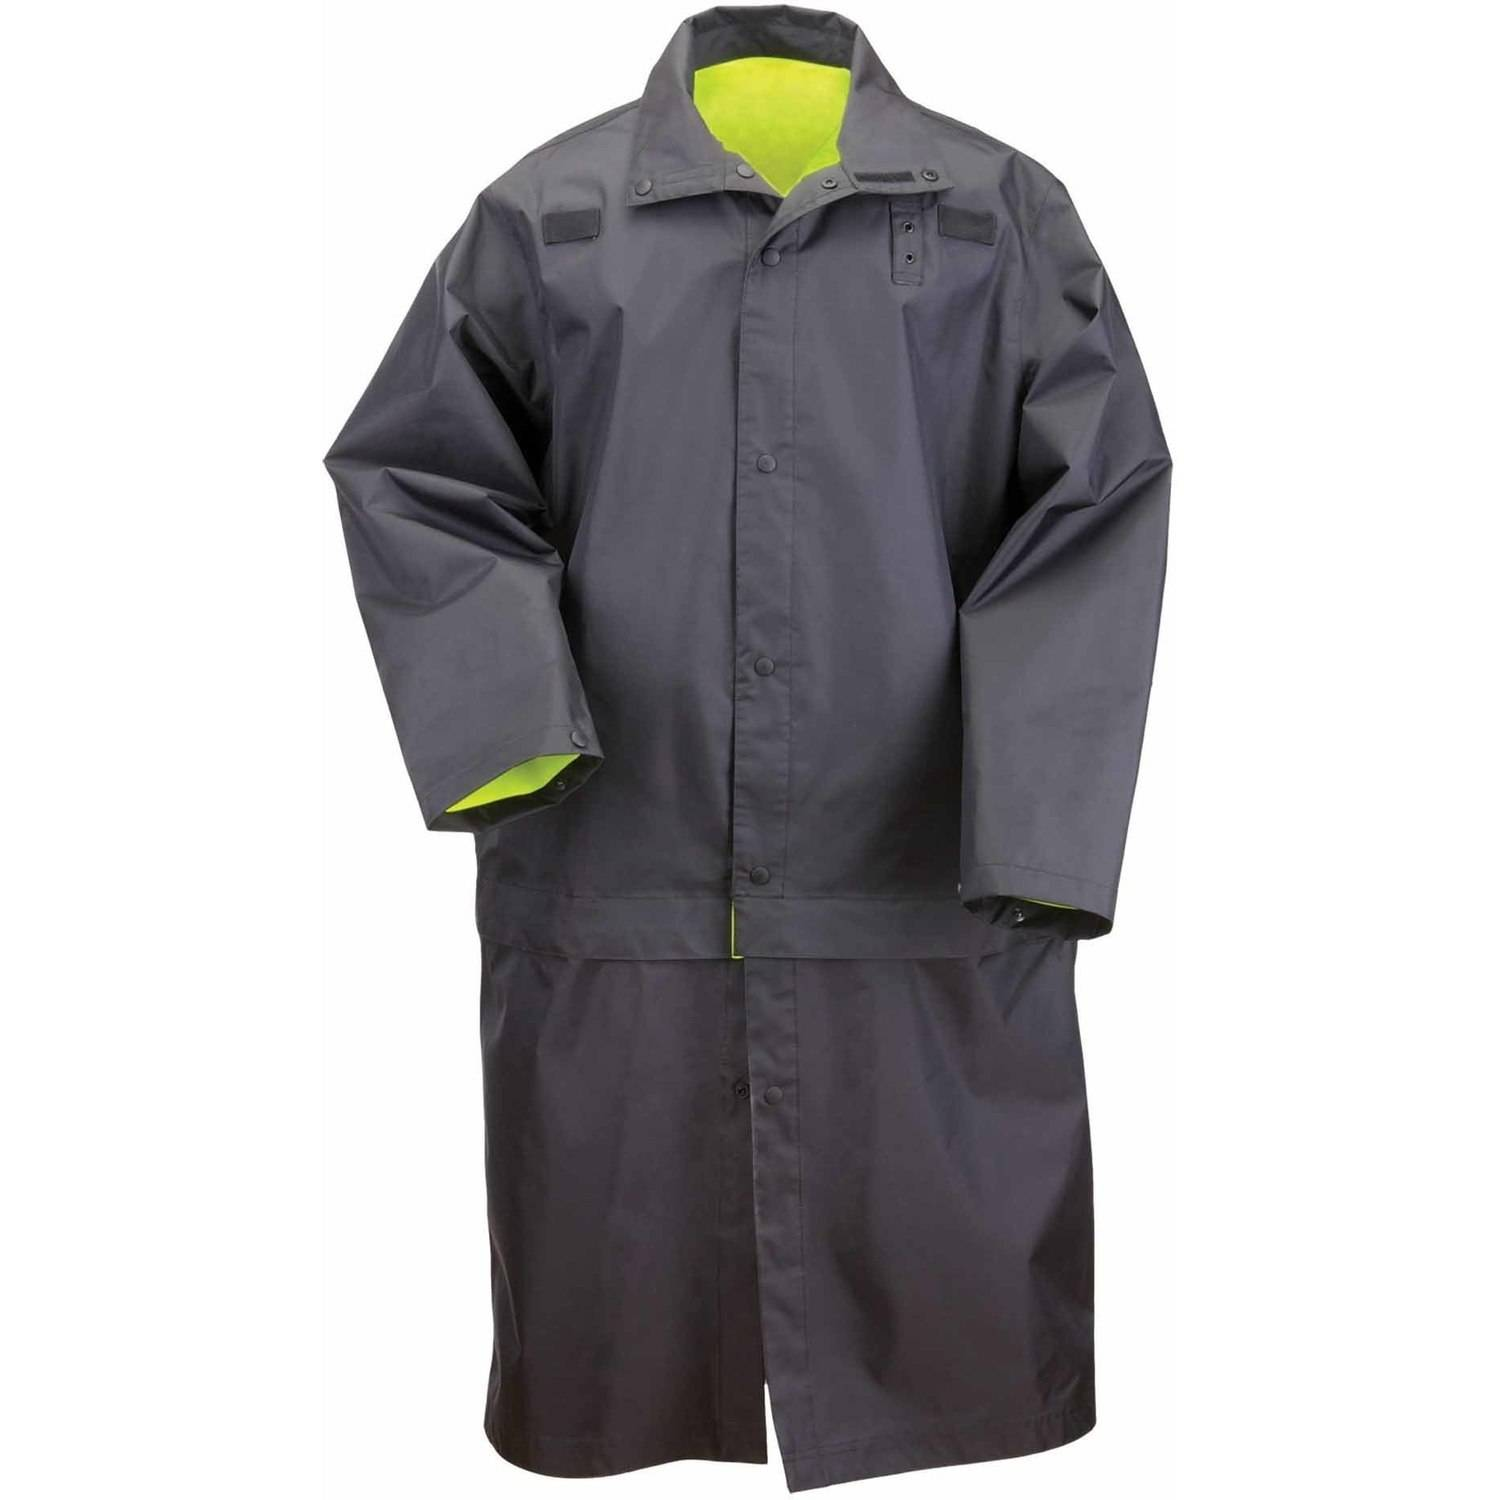 5.11 Tactical Men Long Reversible High Visibility Rain Coat, Ansi Class 3, Black by 5.11 Tactical